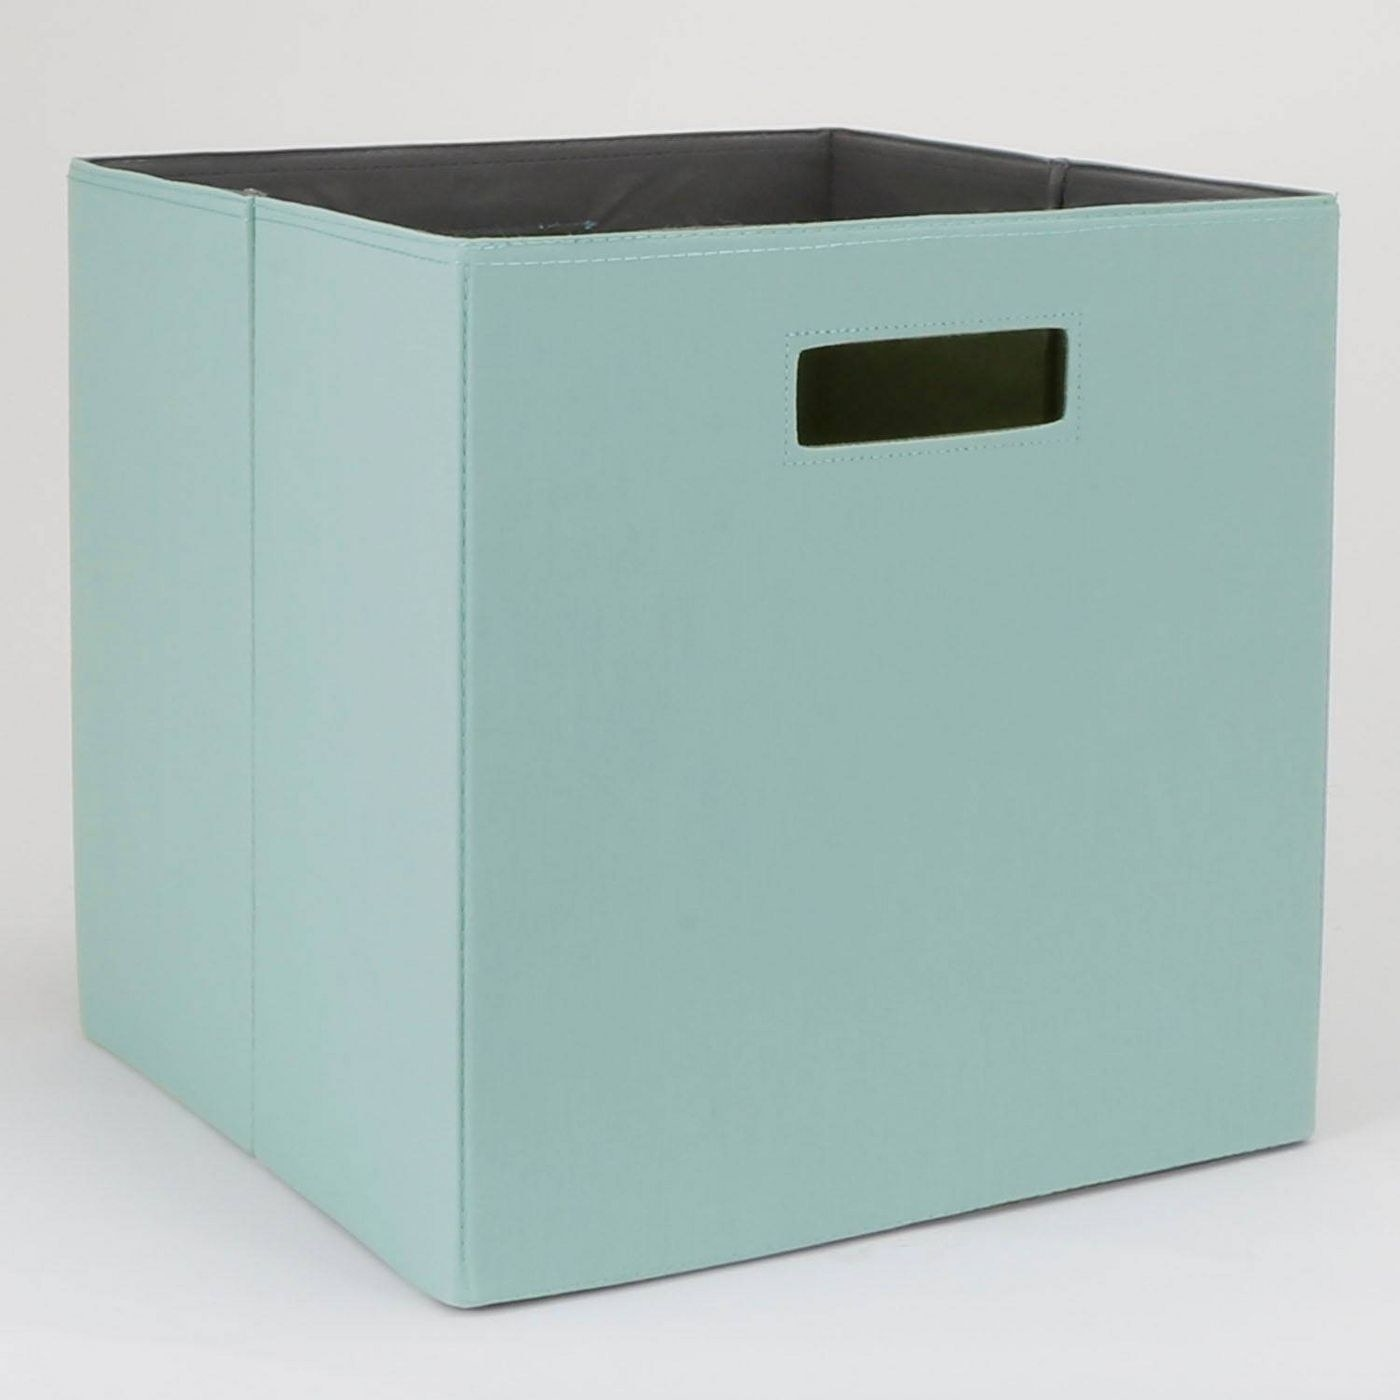 A teal storage cube